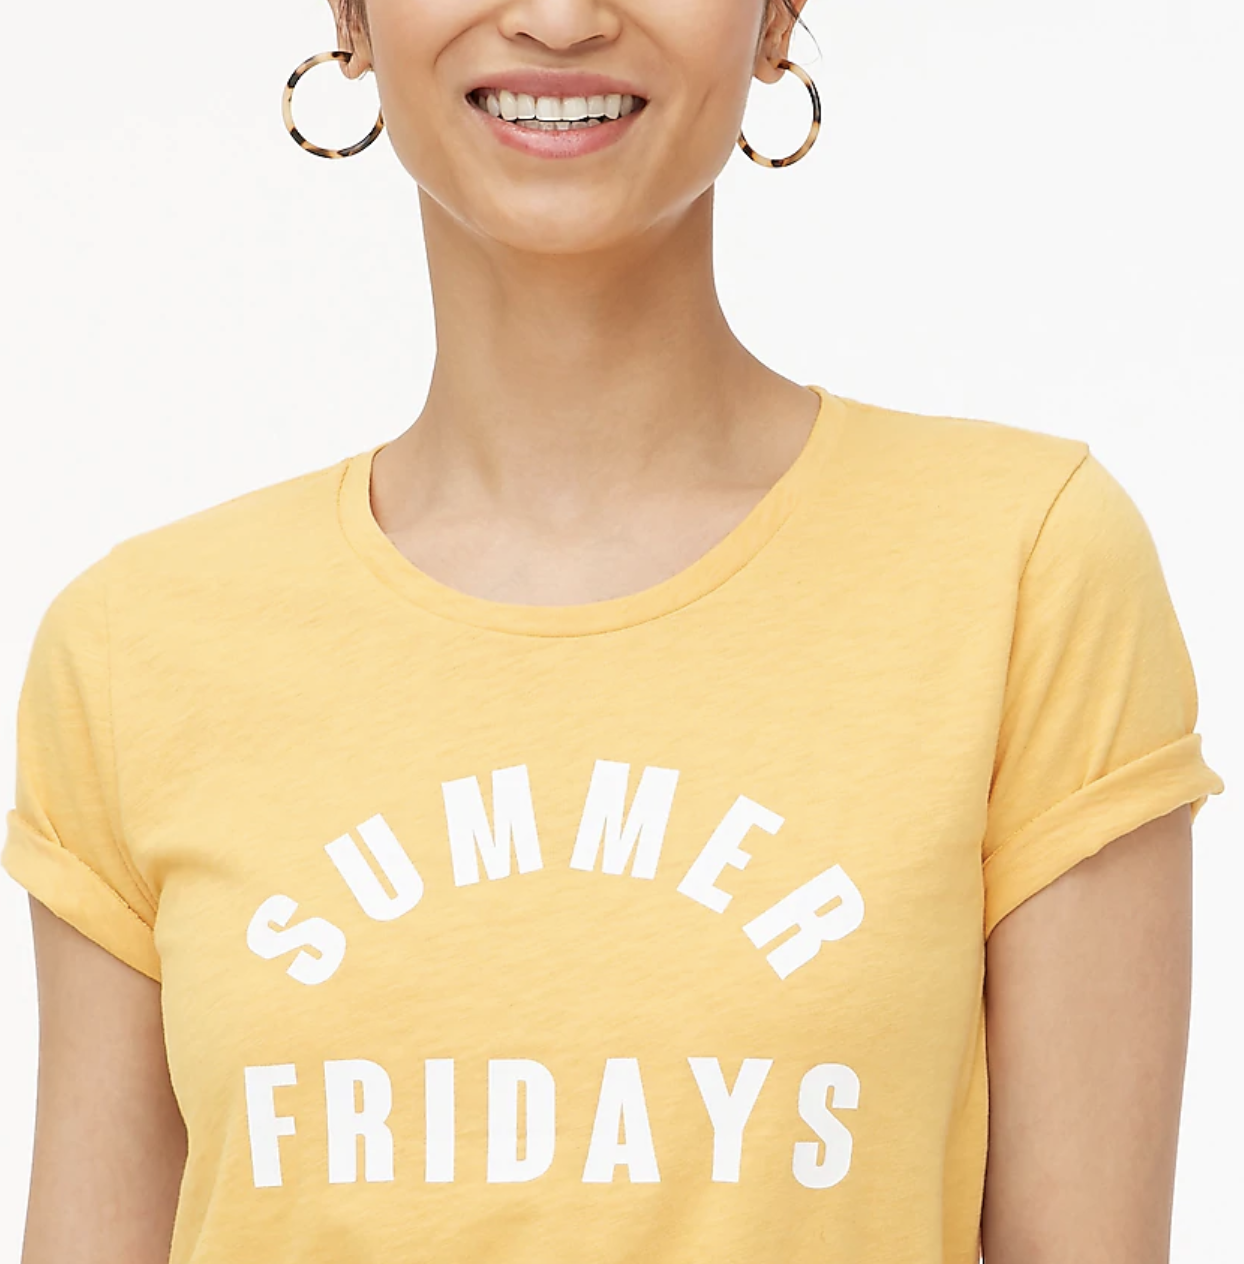 """A model wears a yellow T-shirt that says """"Summer Fridays"""""""